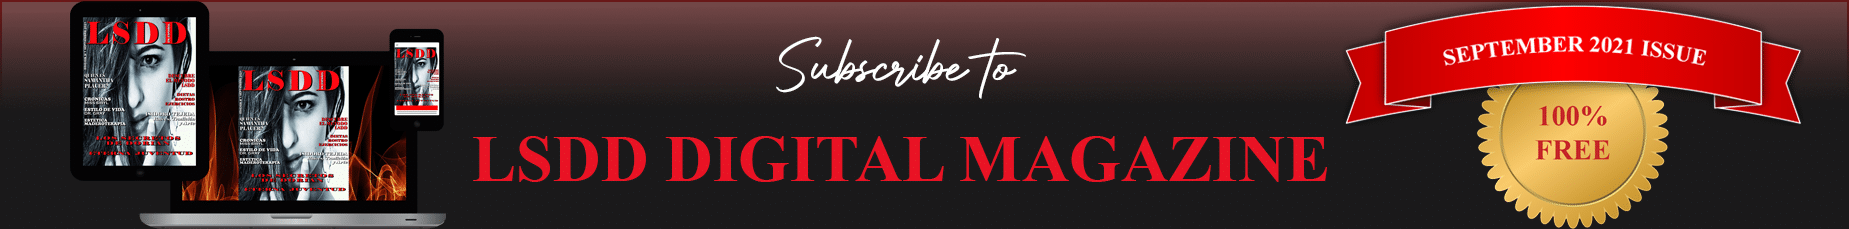 Subscribe to LSDD Magazine Where You can be In